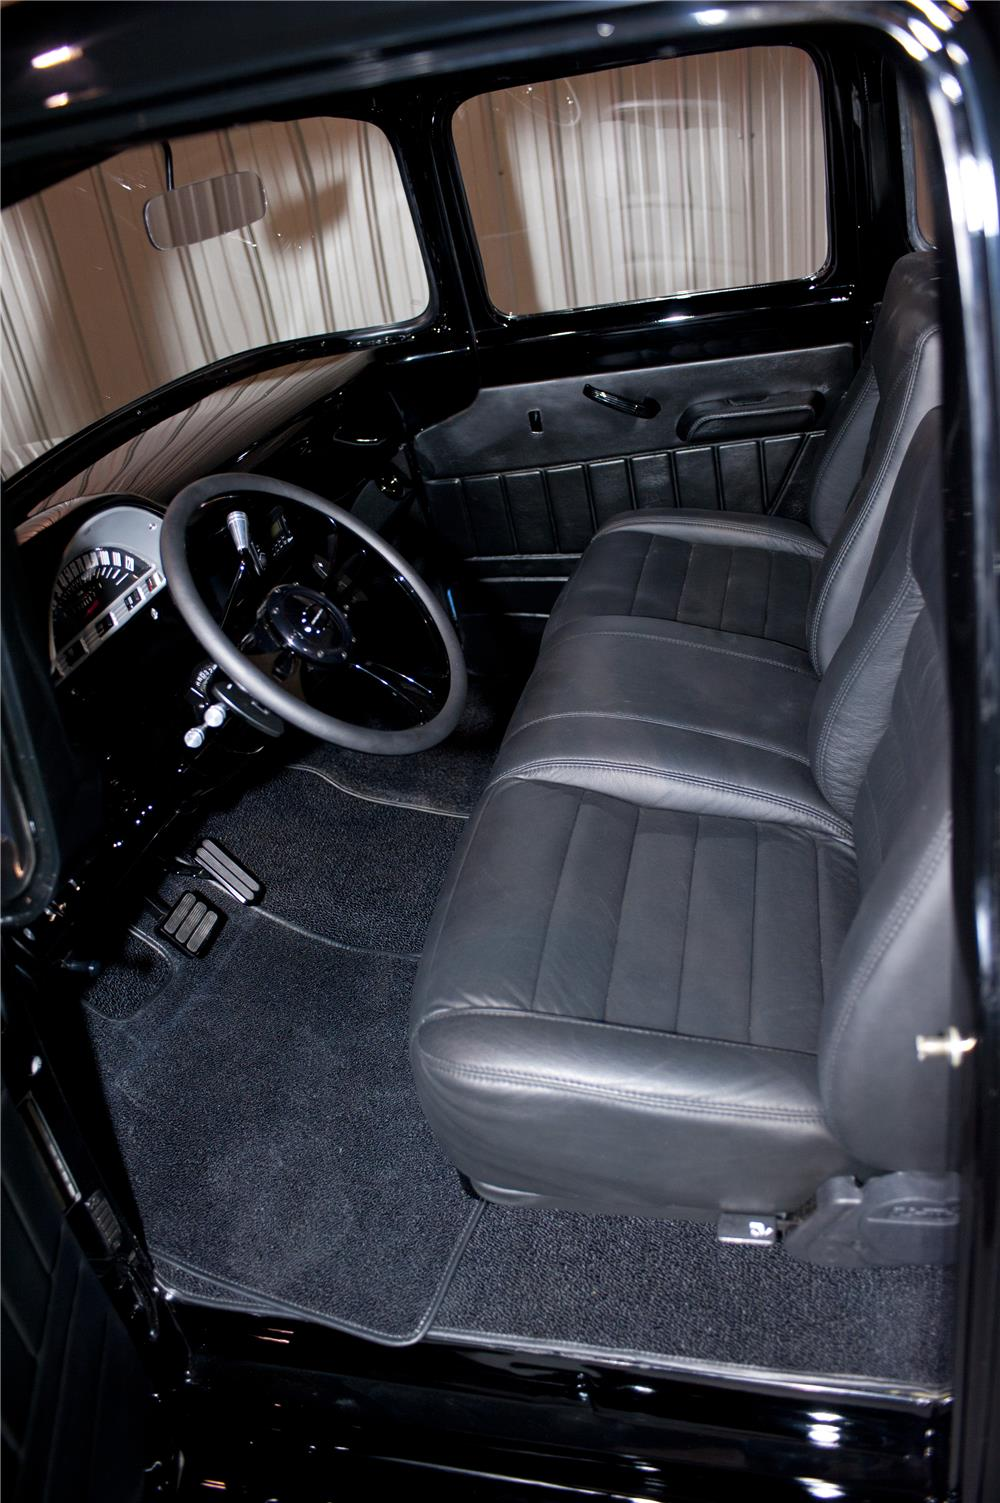 1956 FORD F-100 CUSTOM PICKUP - Interior - 180627